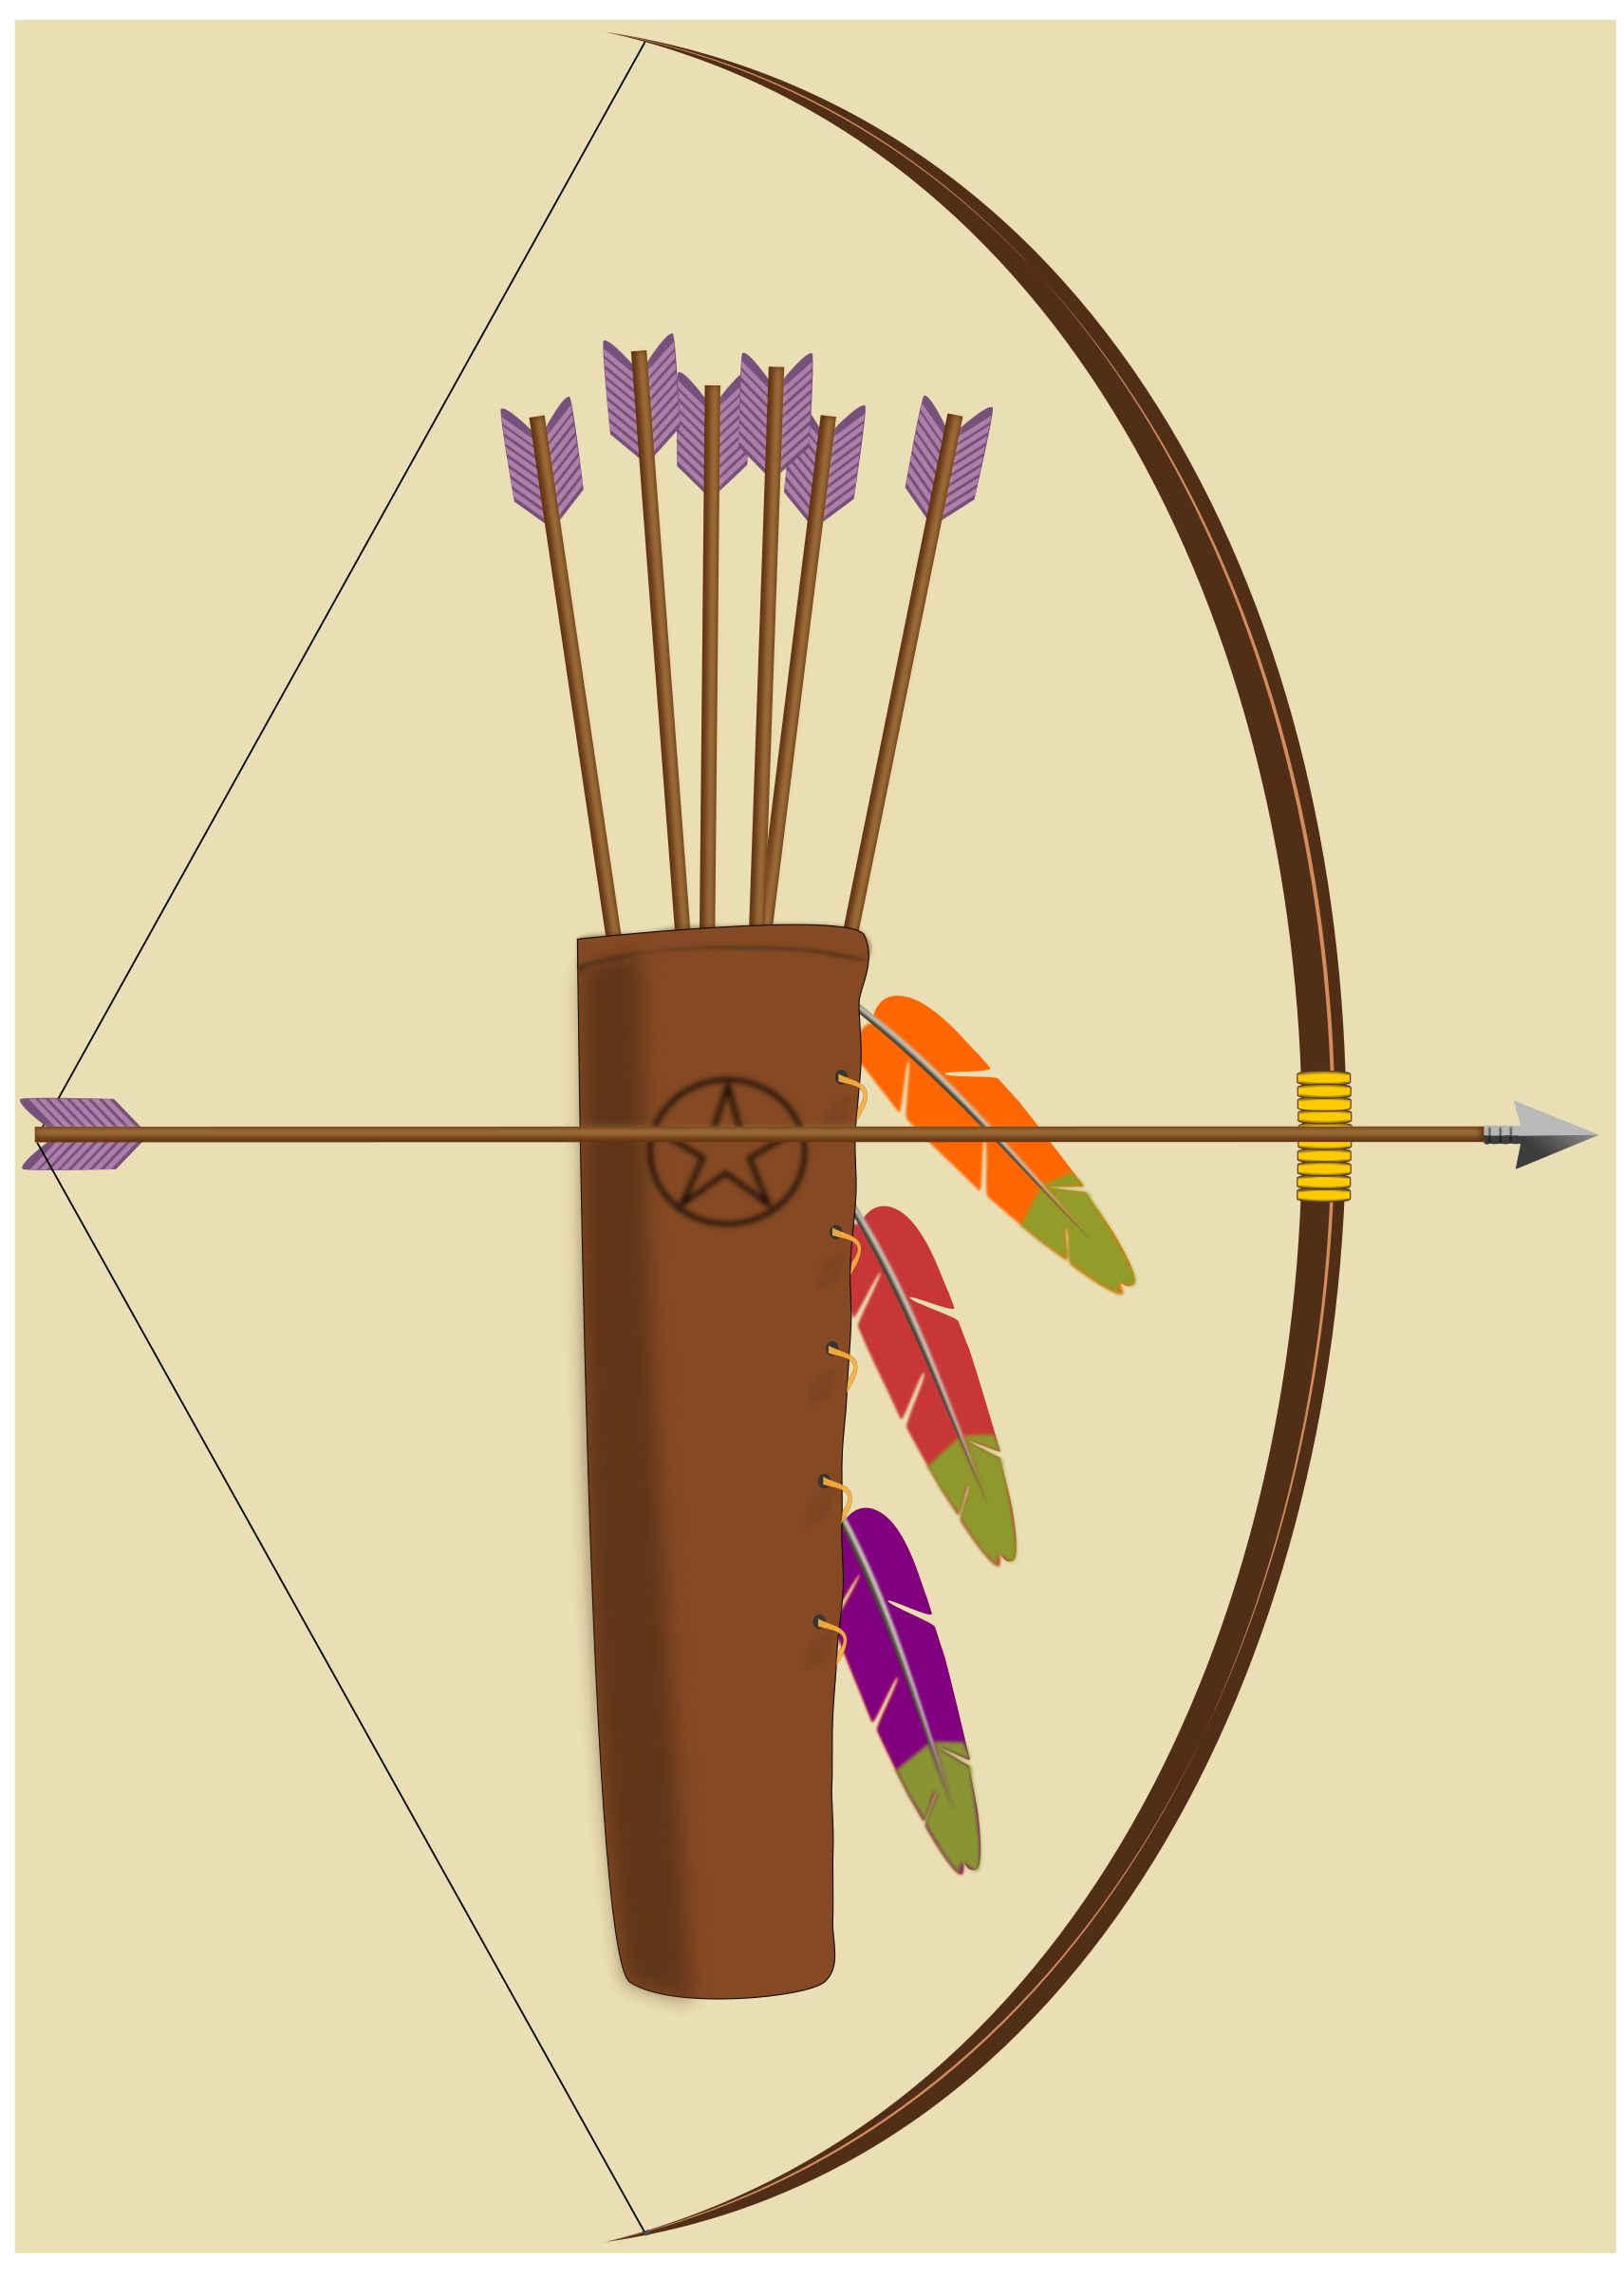 jpg free download Quiver big image png. Clipart bow and arrow